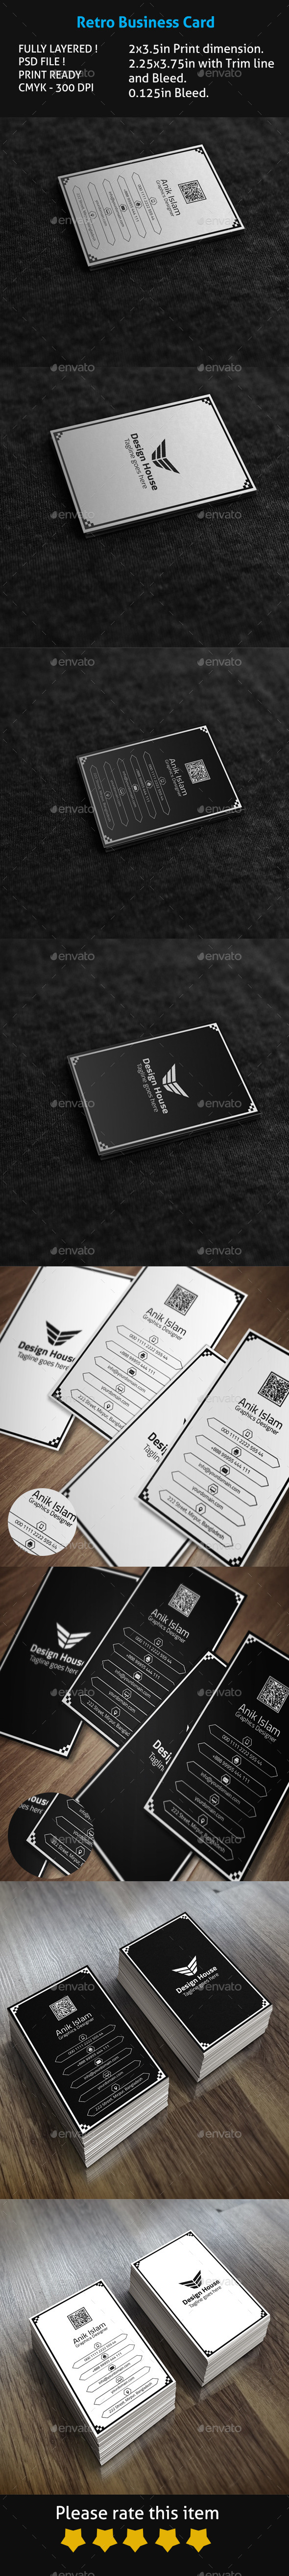 Retro Business Card - Creative Business Cards